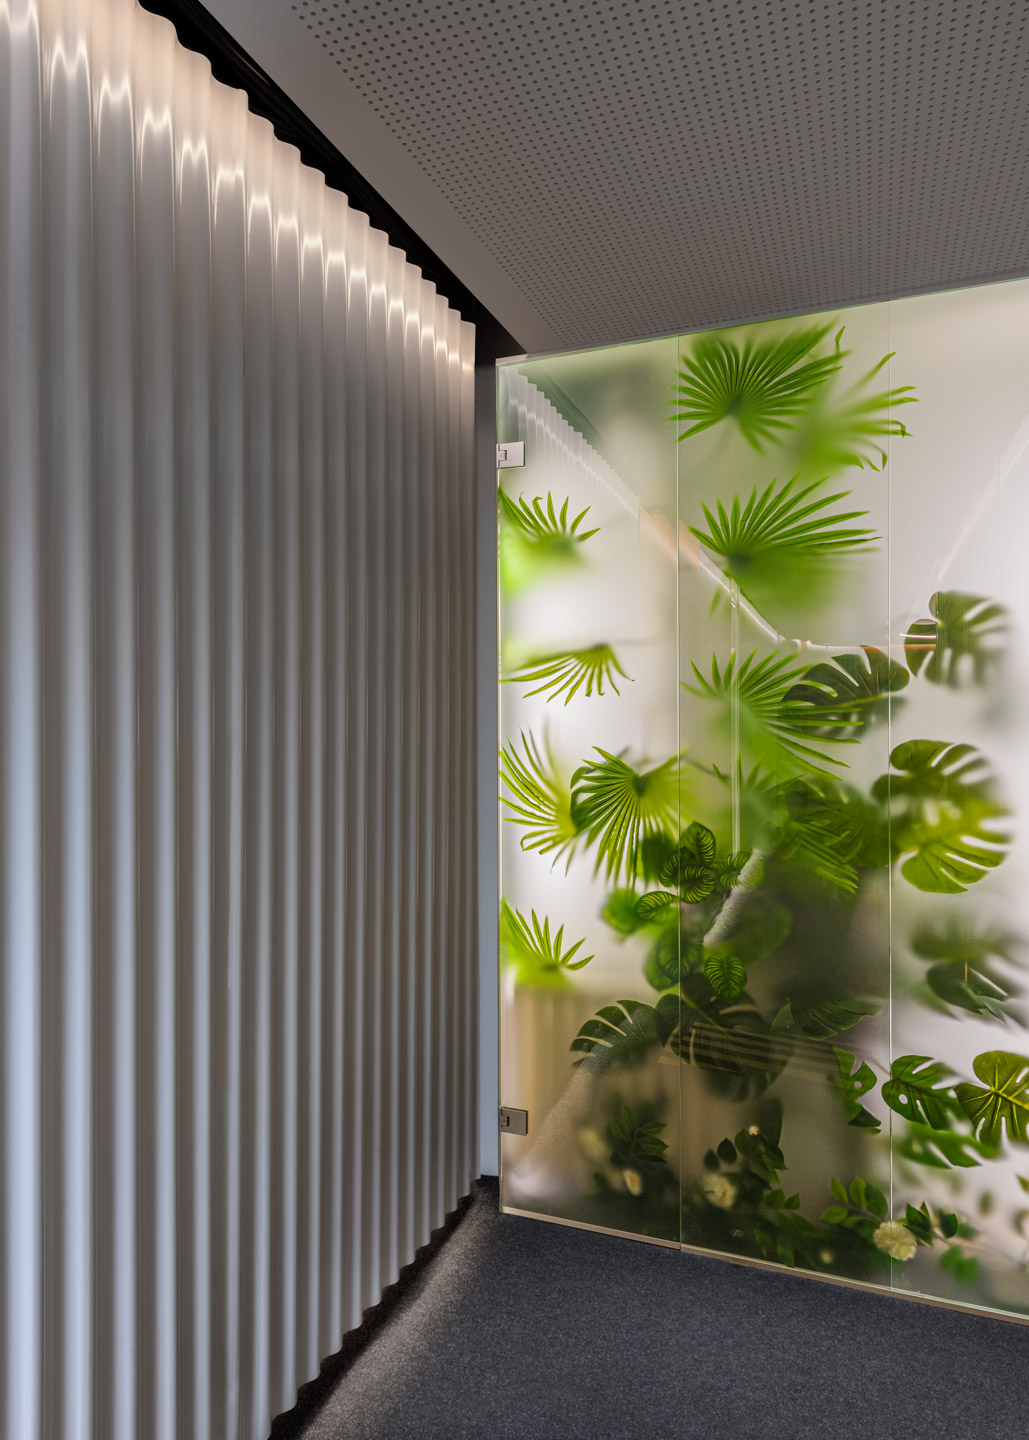 Surreal interior design with waving wall panels, concealed lighting and a tropical garden behind glowing frosted glass panes